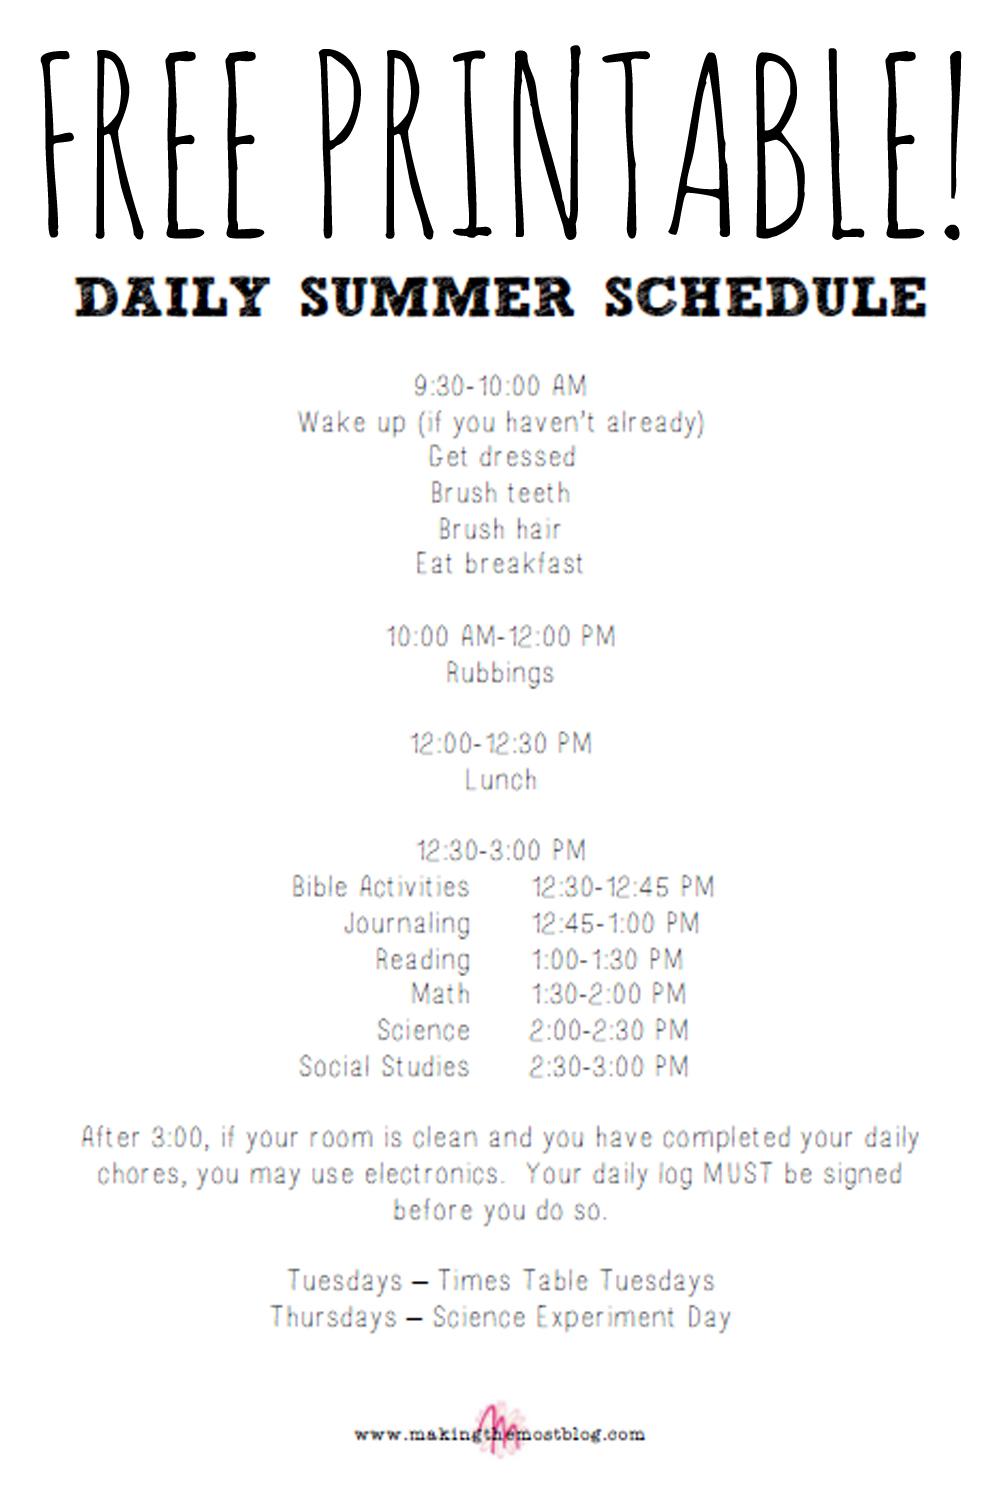 FREE! Printable Summer Schedule | Making the Most Blog